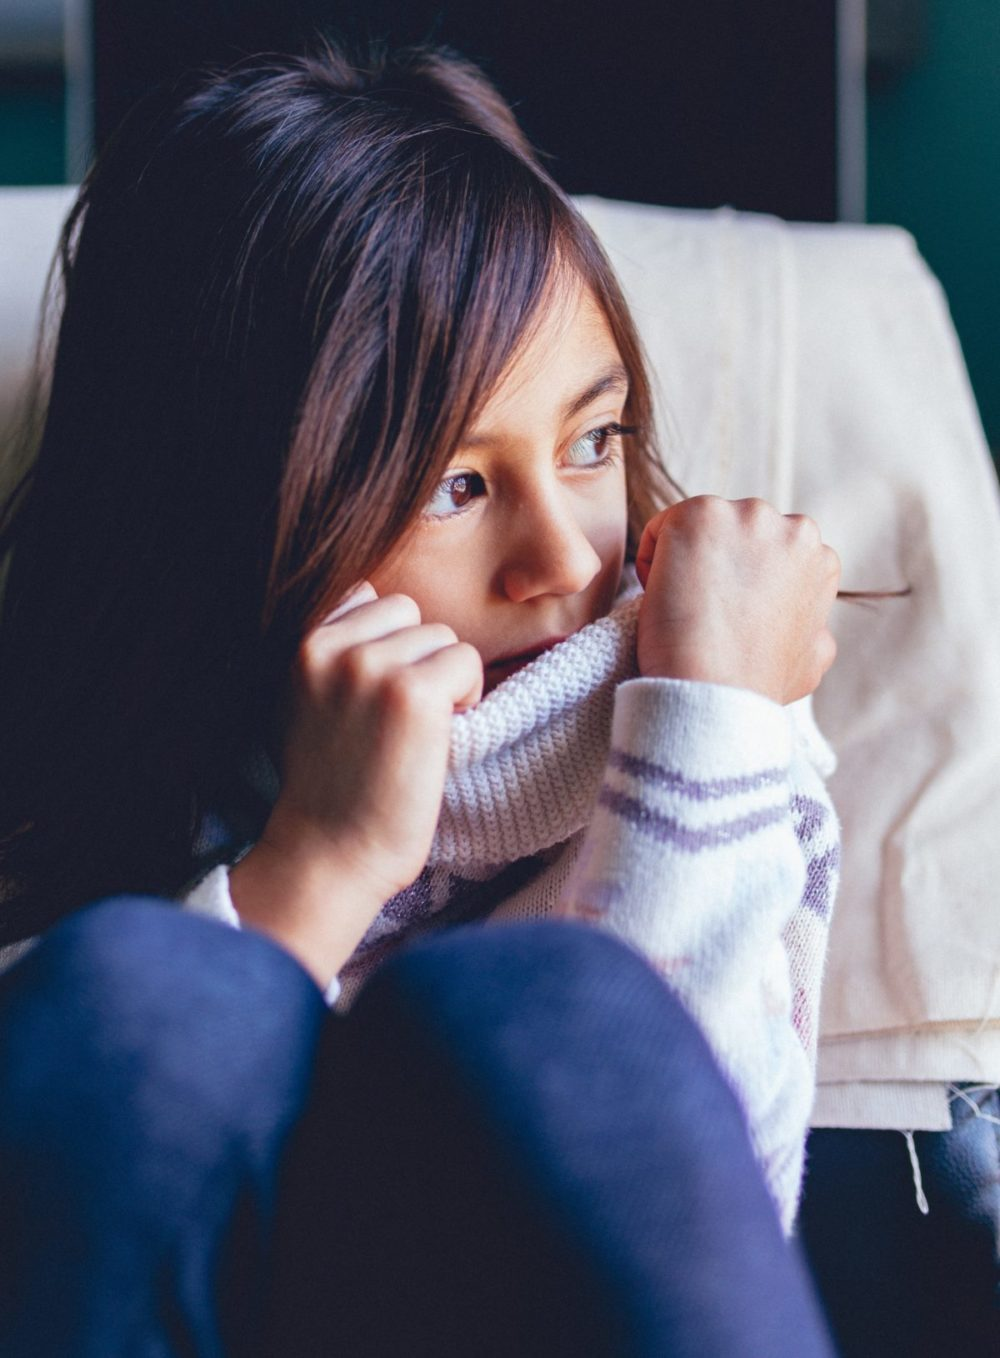 When your child becomes seriously unwell, though, those battles reach an entirely new level. Here's some tips on how to advocate for your child's health.